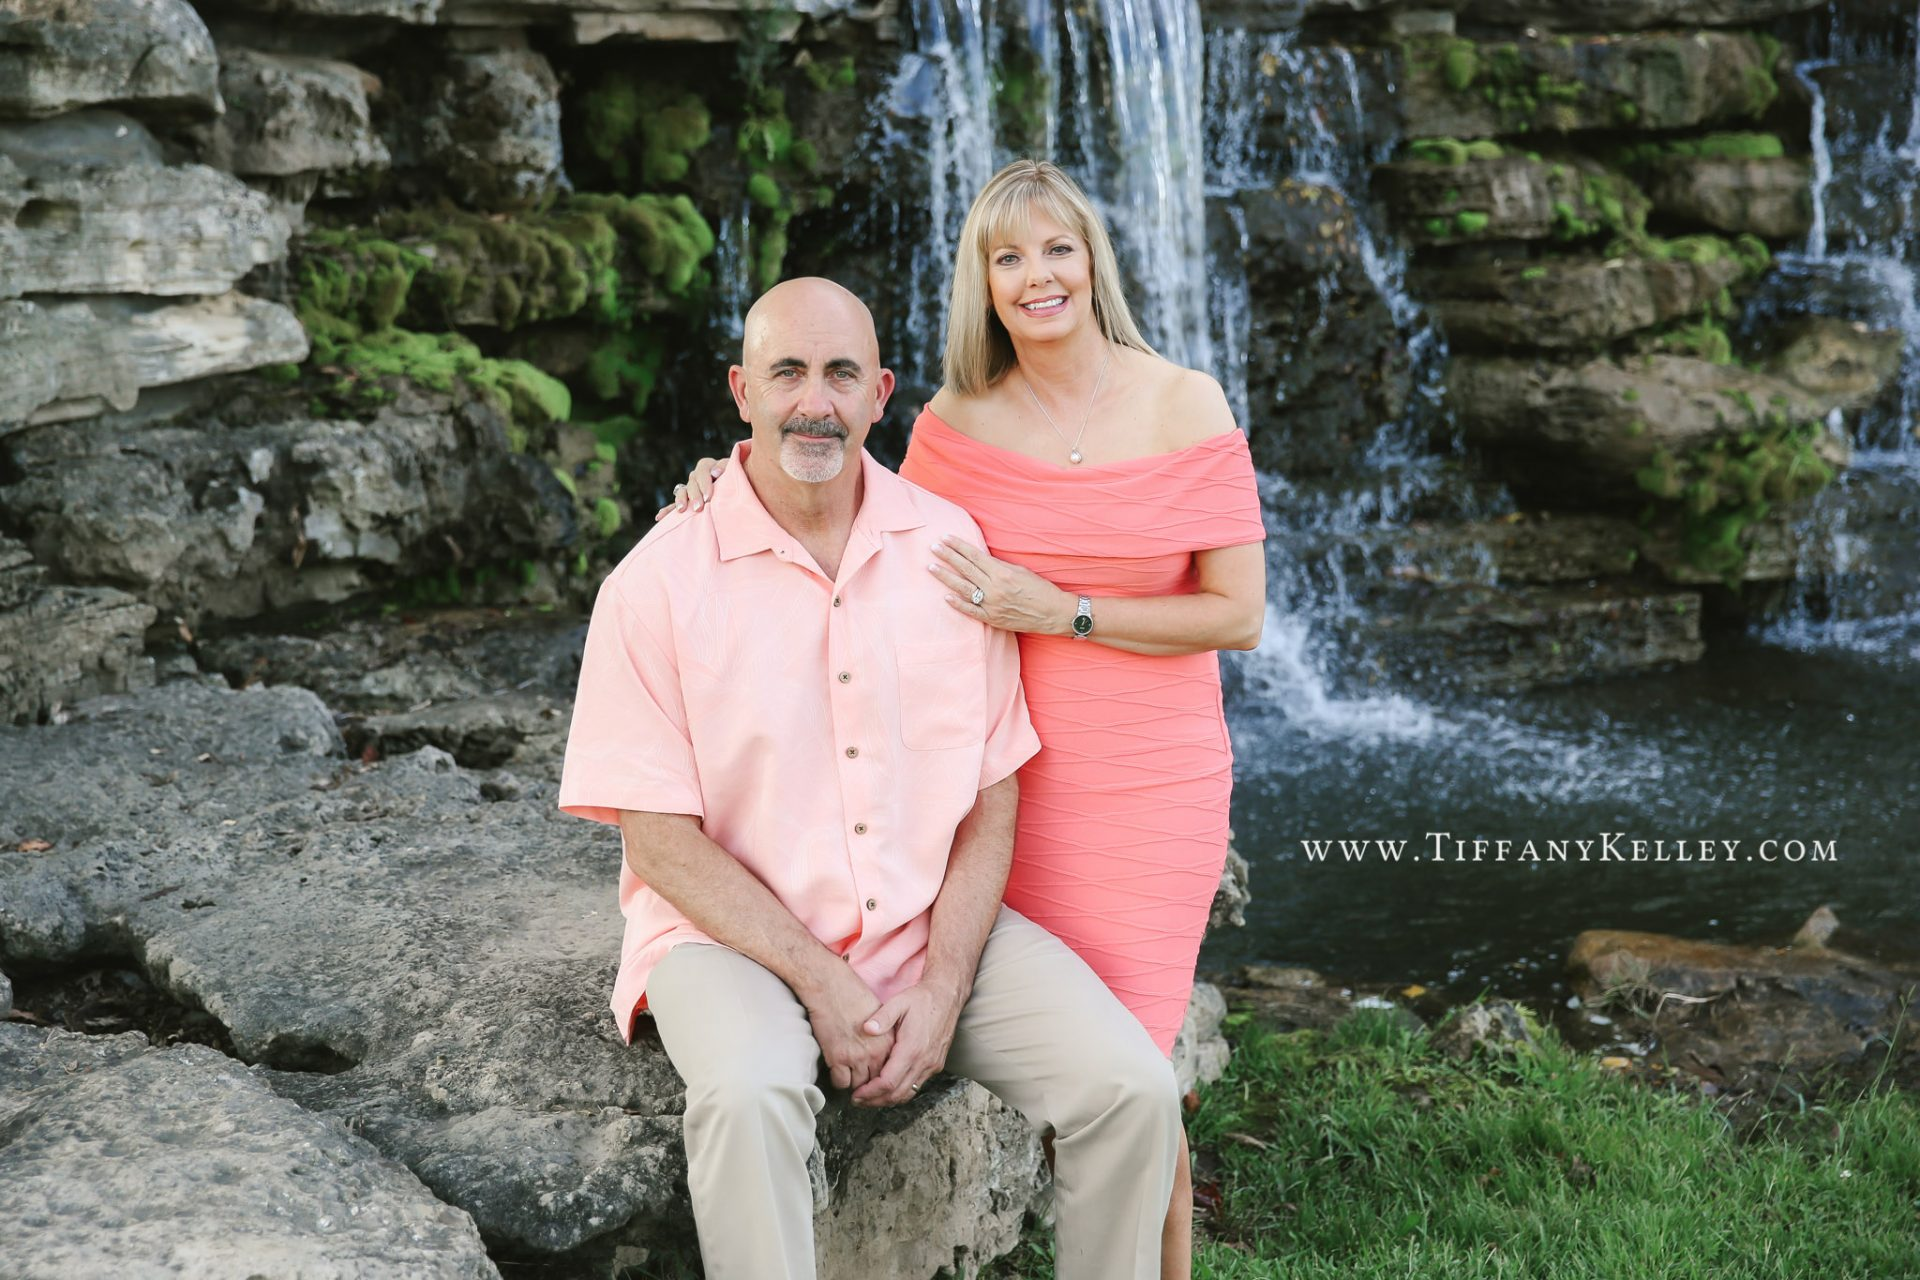 Thompson Anniversary Branson MO Anniversary Photographer Couples Photos Tiffany Kelley Photography